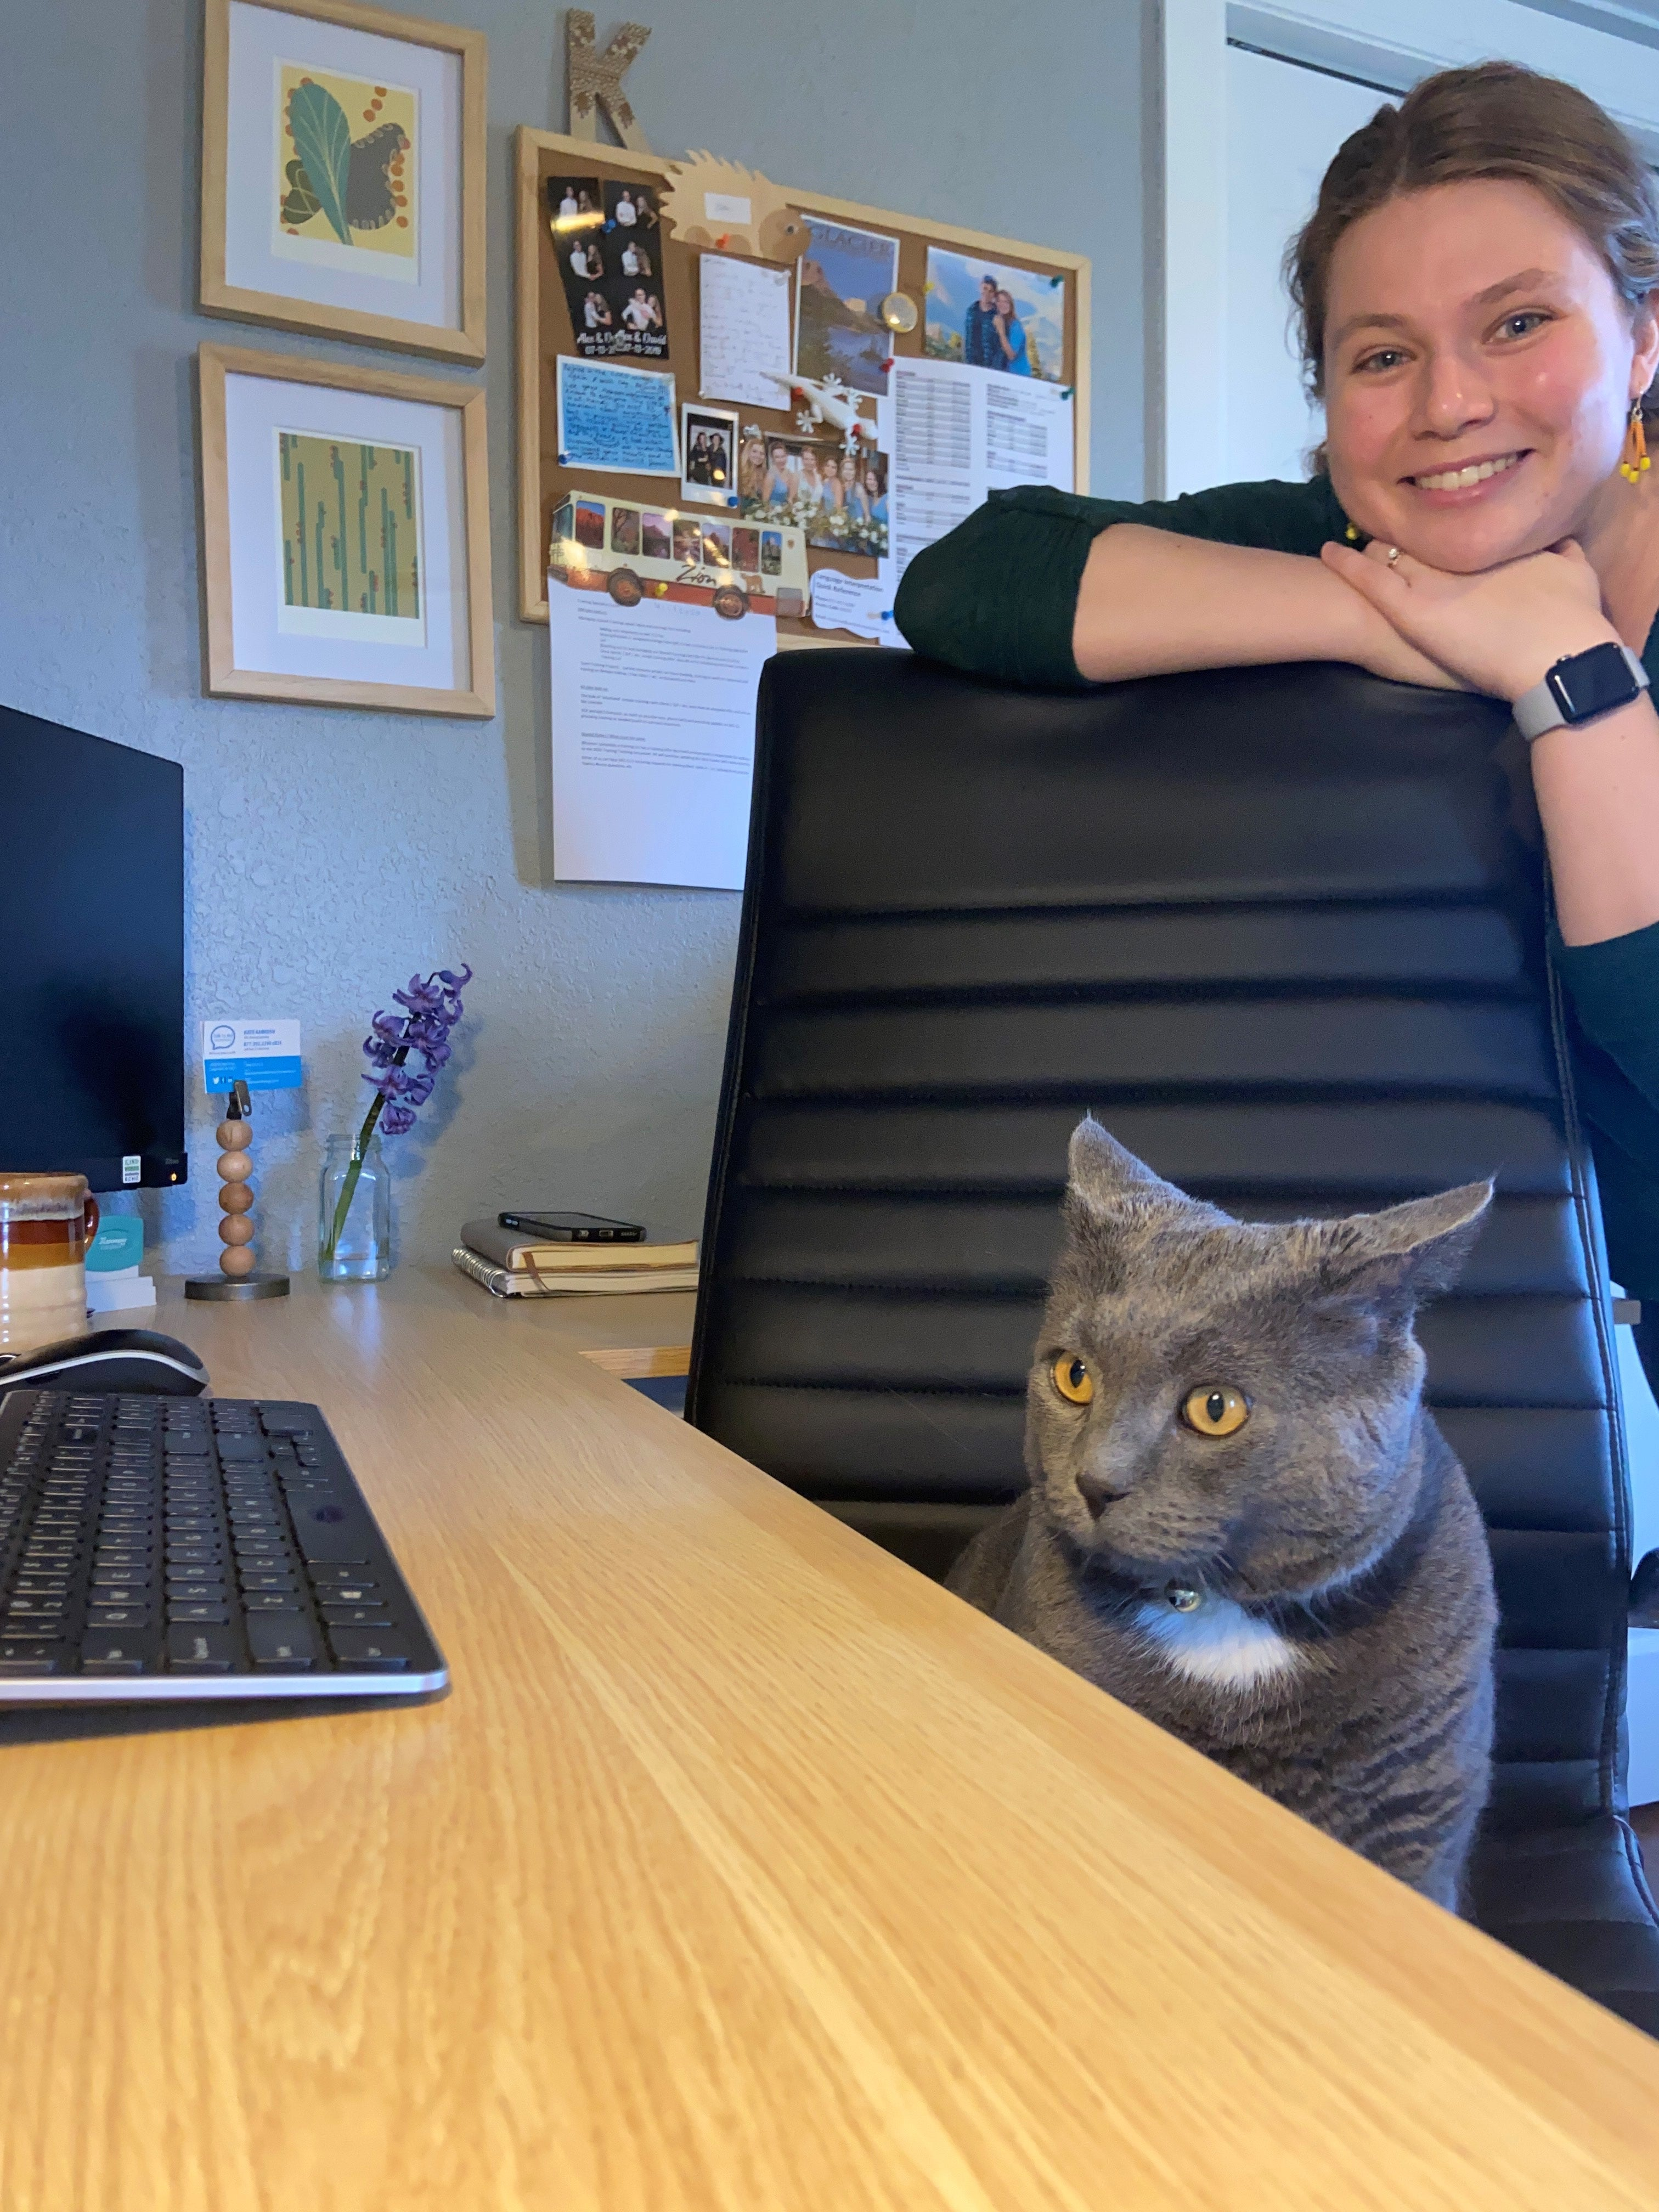 AAC Training Specialist Kate Karkosh's workspace and cat Grover